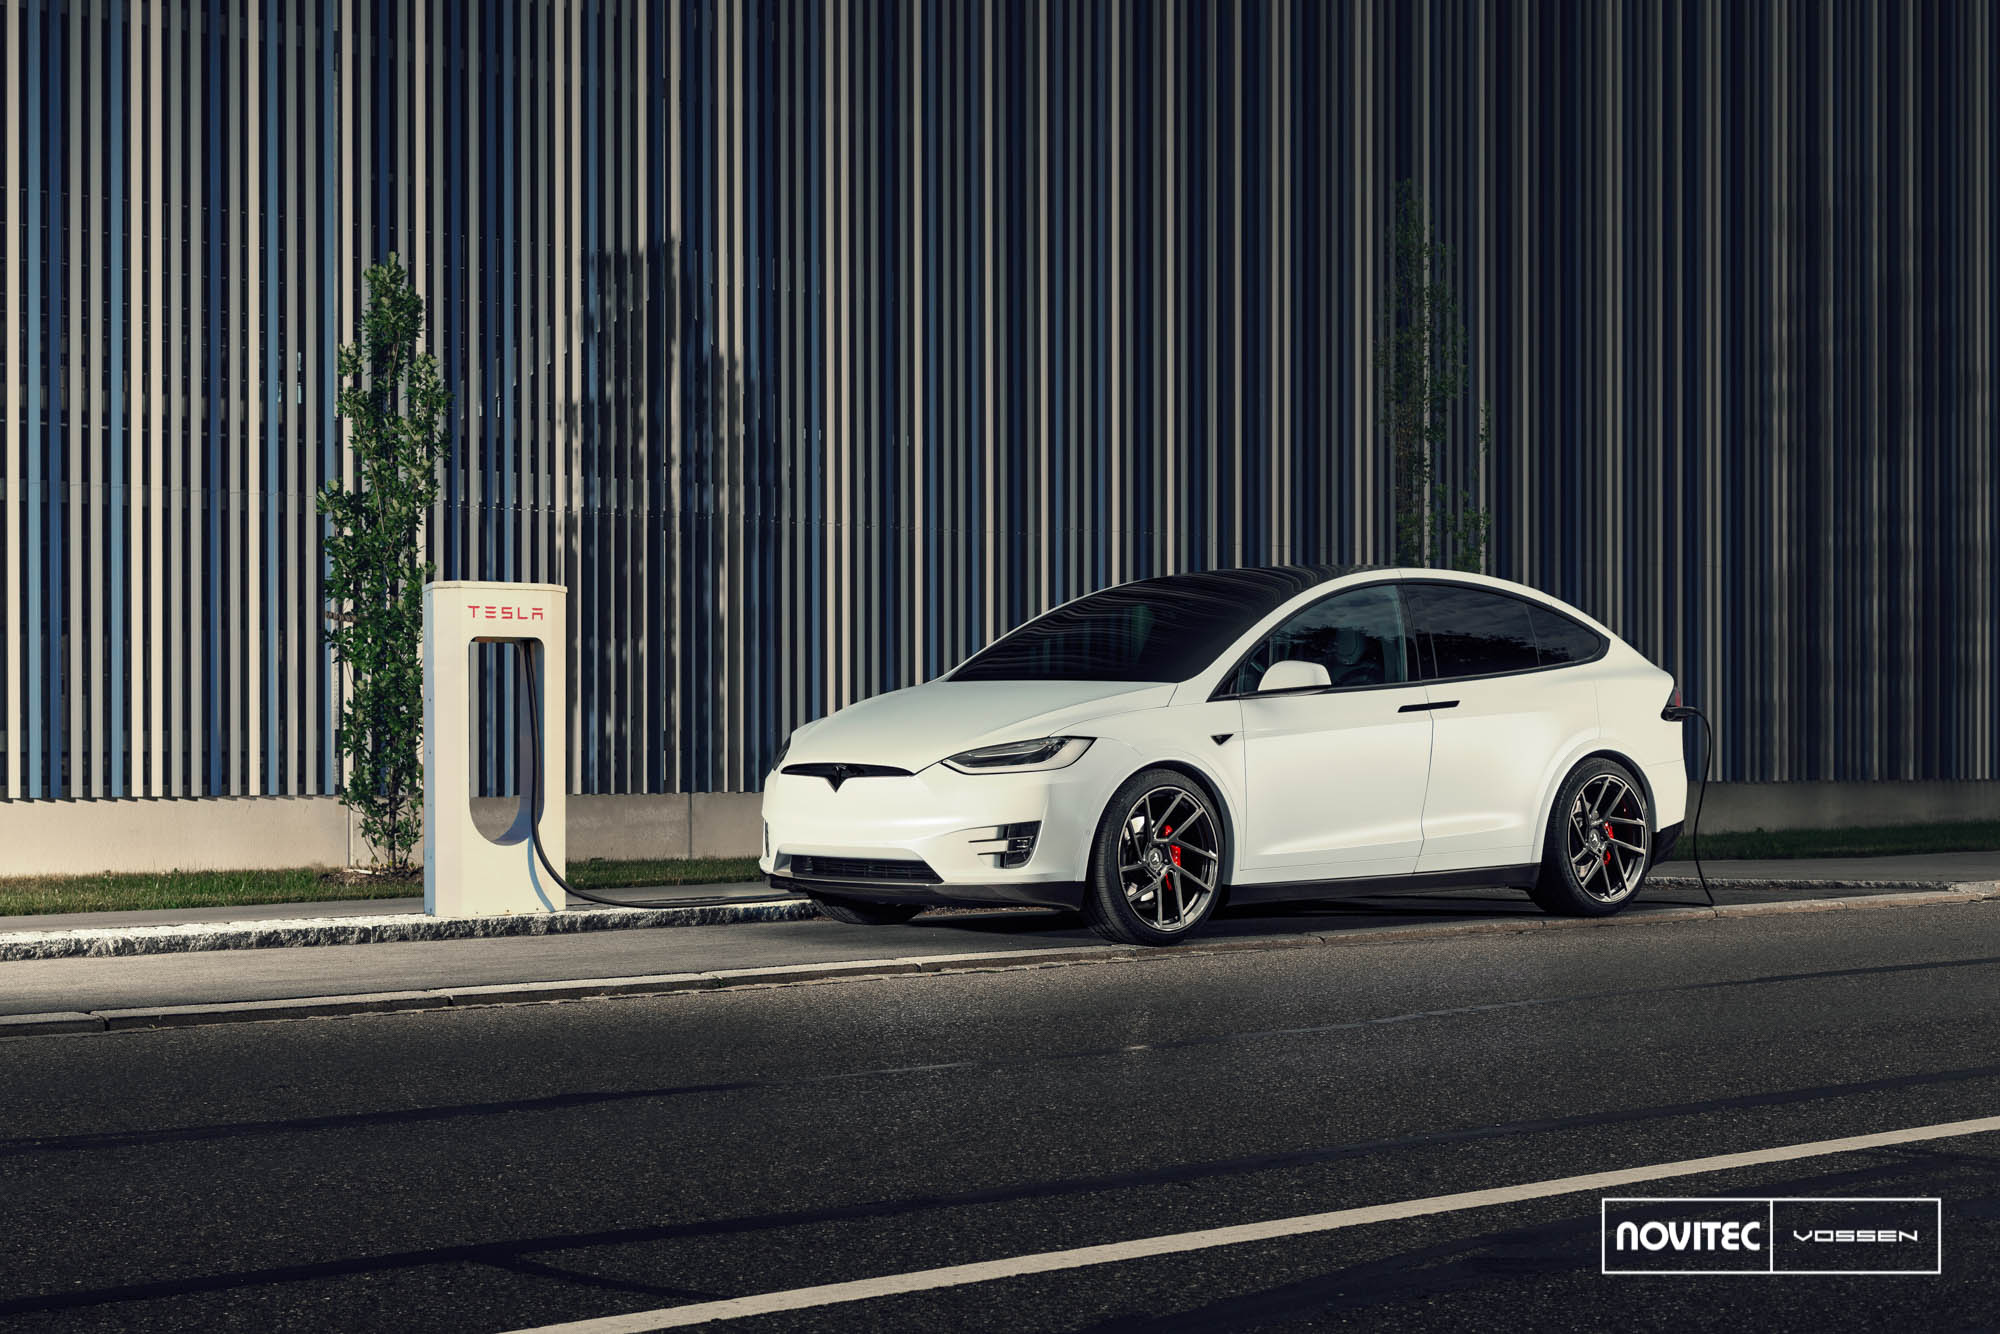 Tesla Model X by Novitec Has Vossen Wheels Goes Minimalist